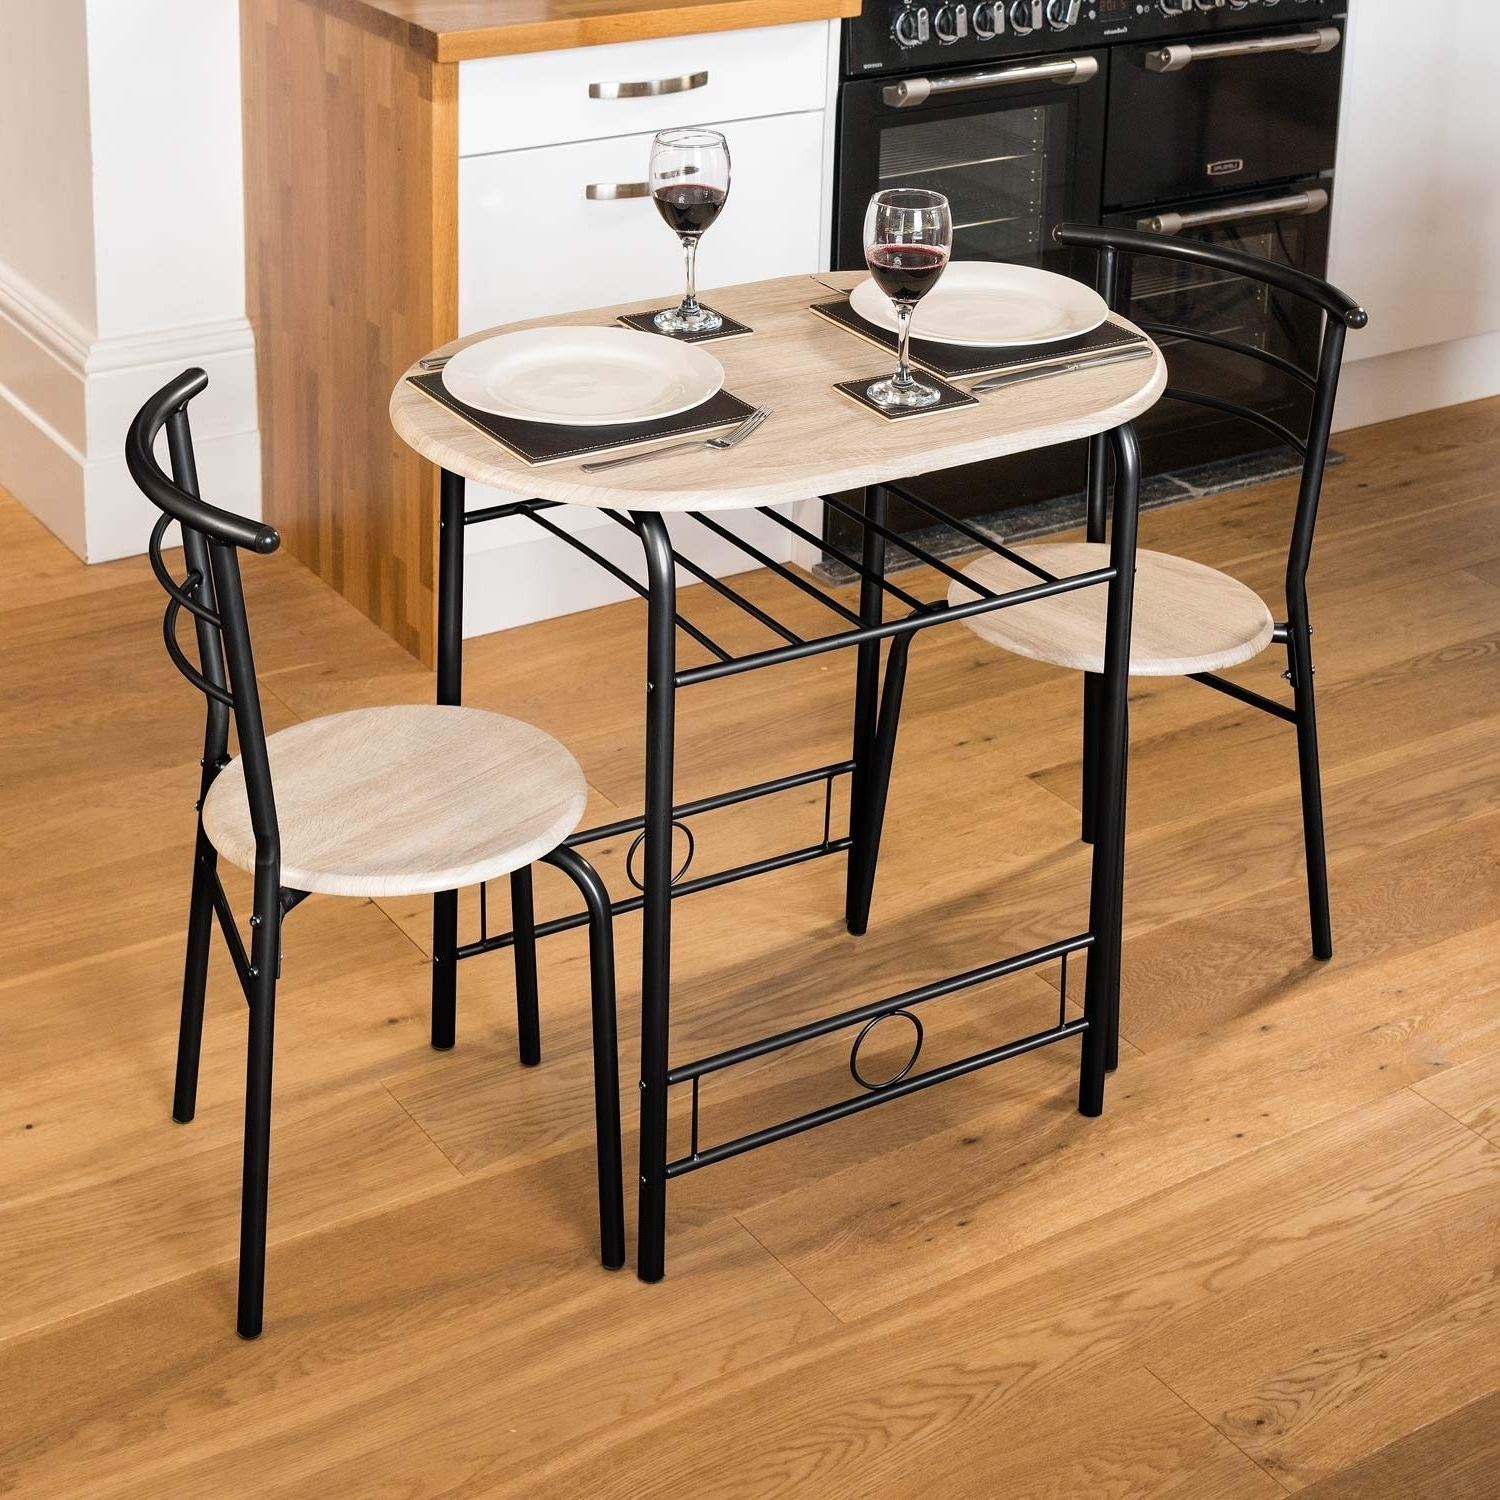 Latest Washed Old Oak & Waxed Black Legs Bar Tables For Christow 3 Piece Dining Set Breakfast Bar Kitchen Table Chairs (View 10 of 25)